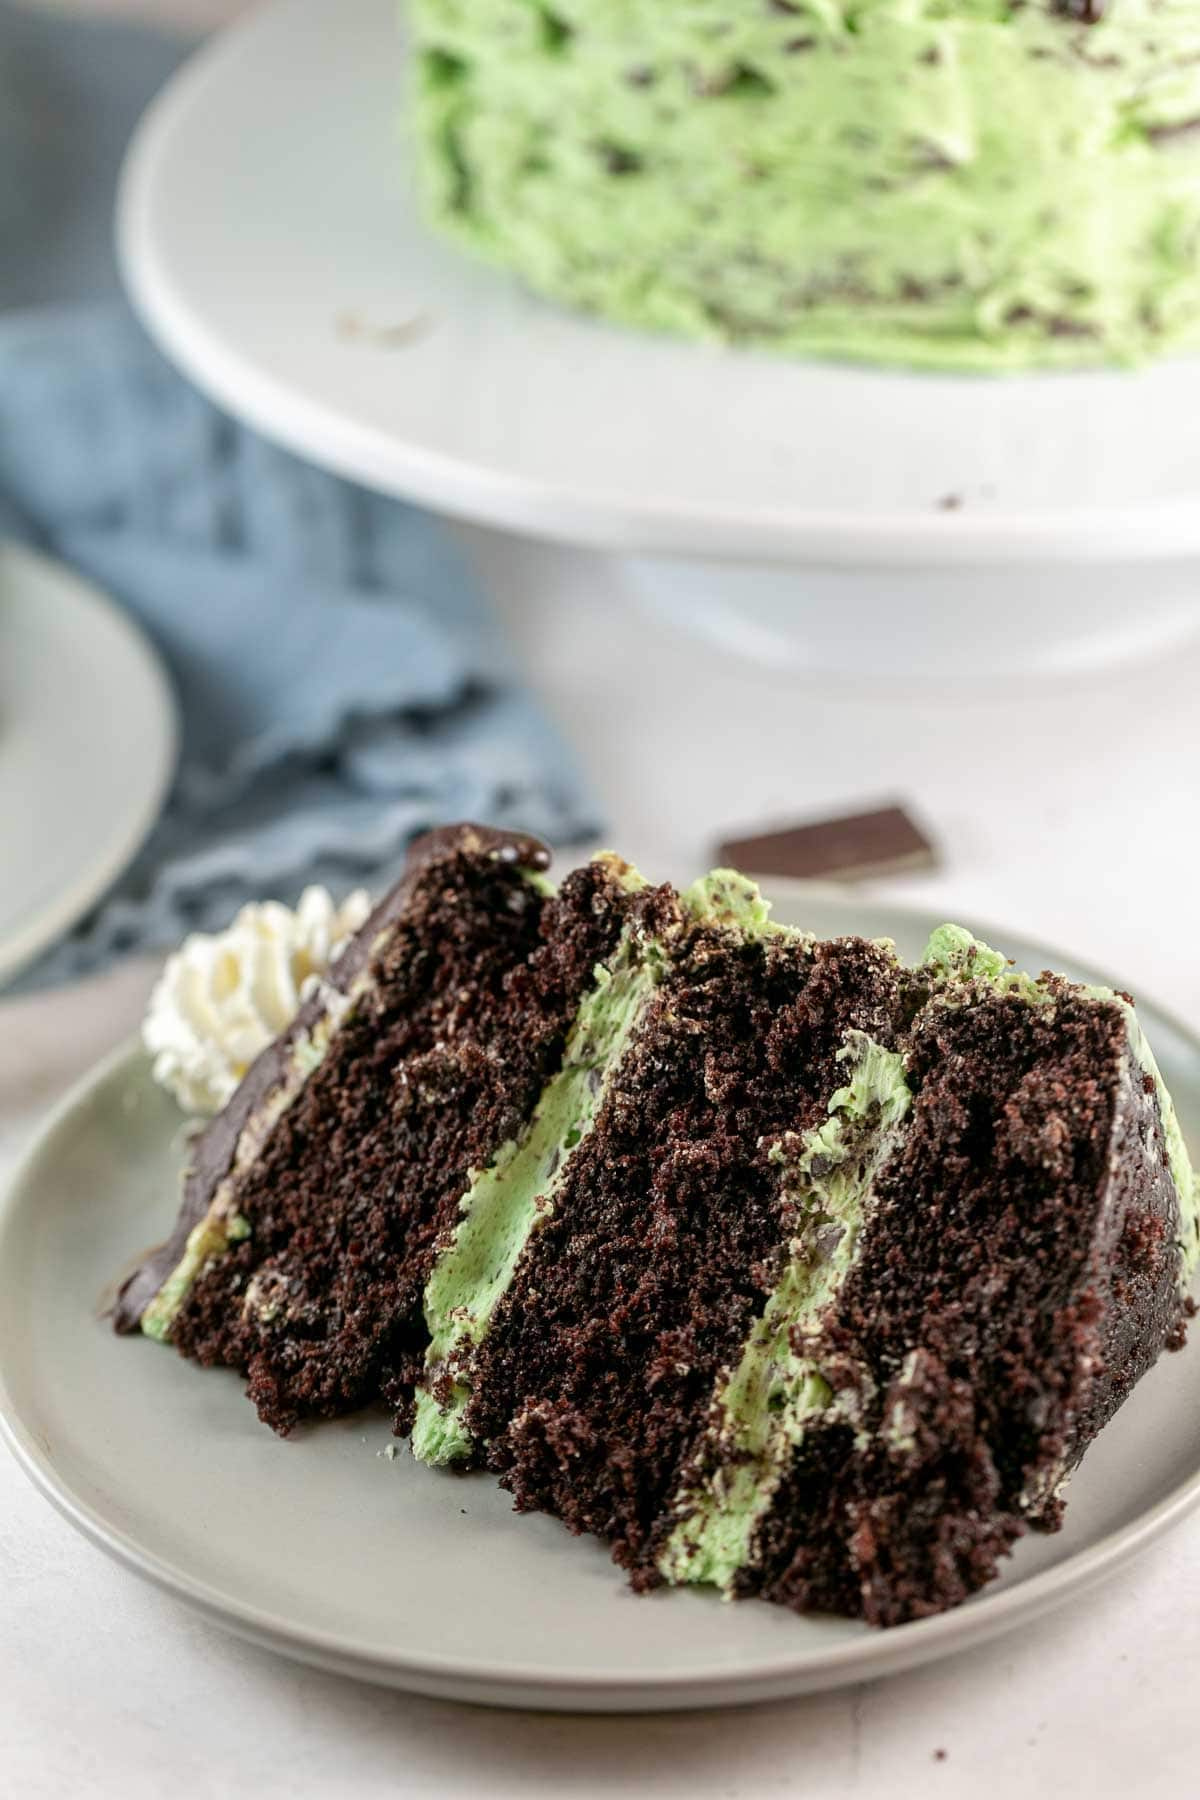 large slice of chocolate cake with mint chocolate chip frosting